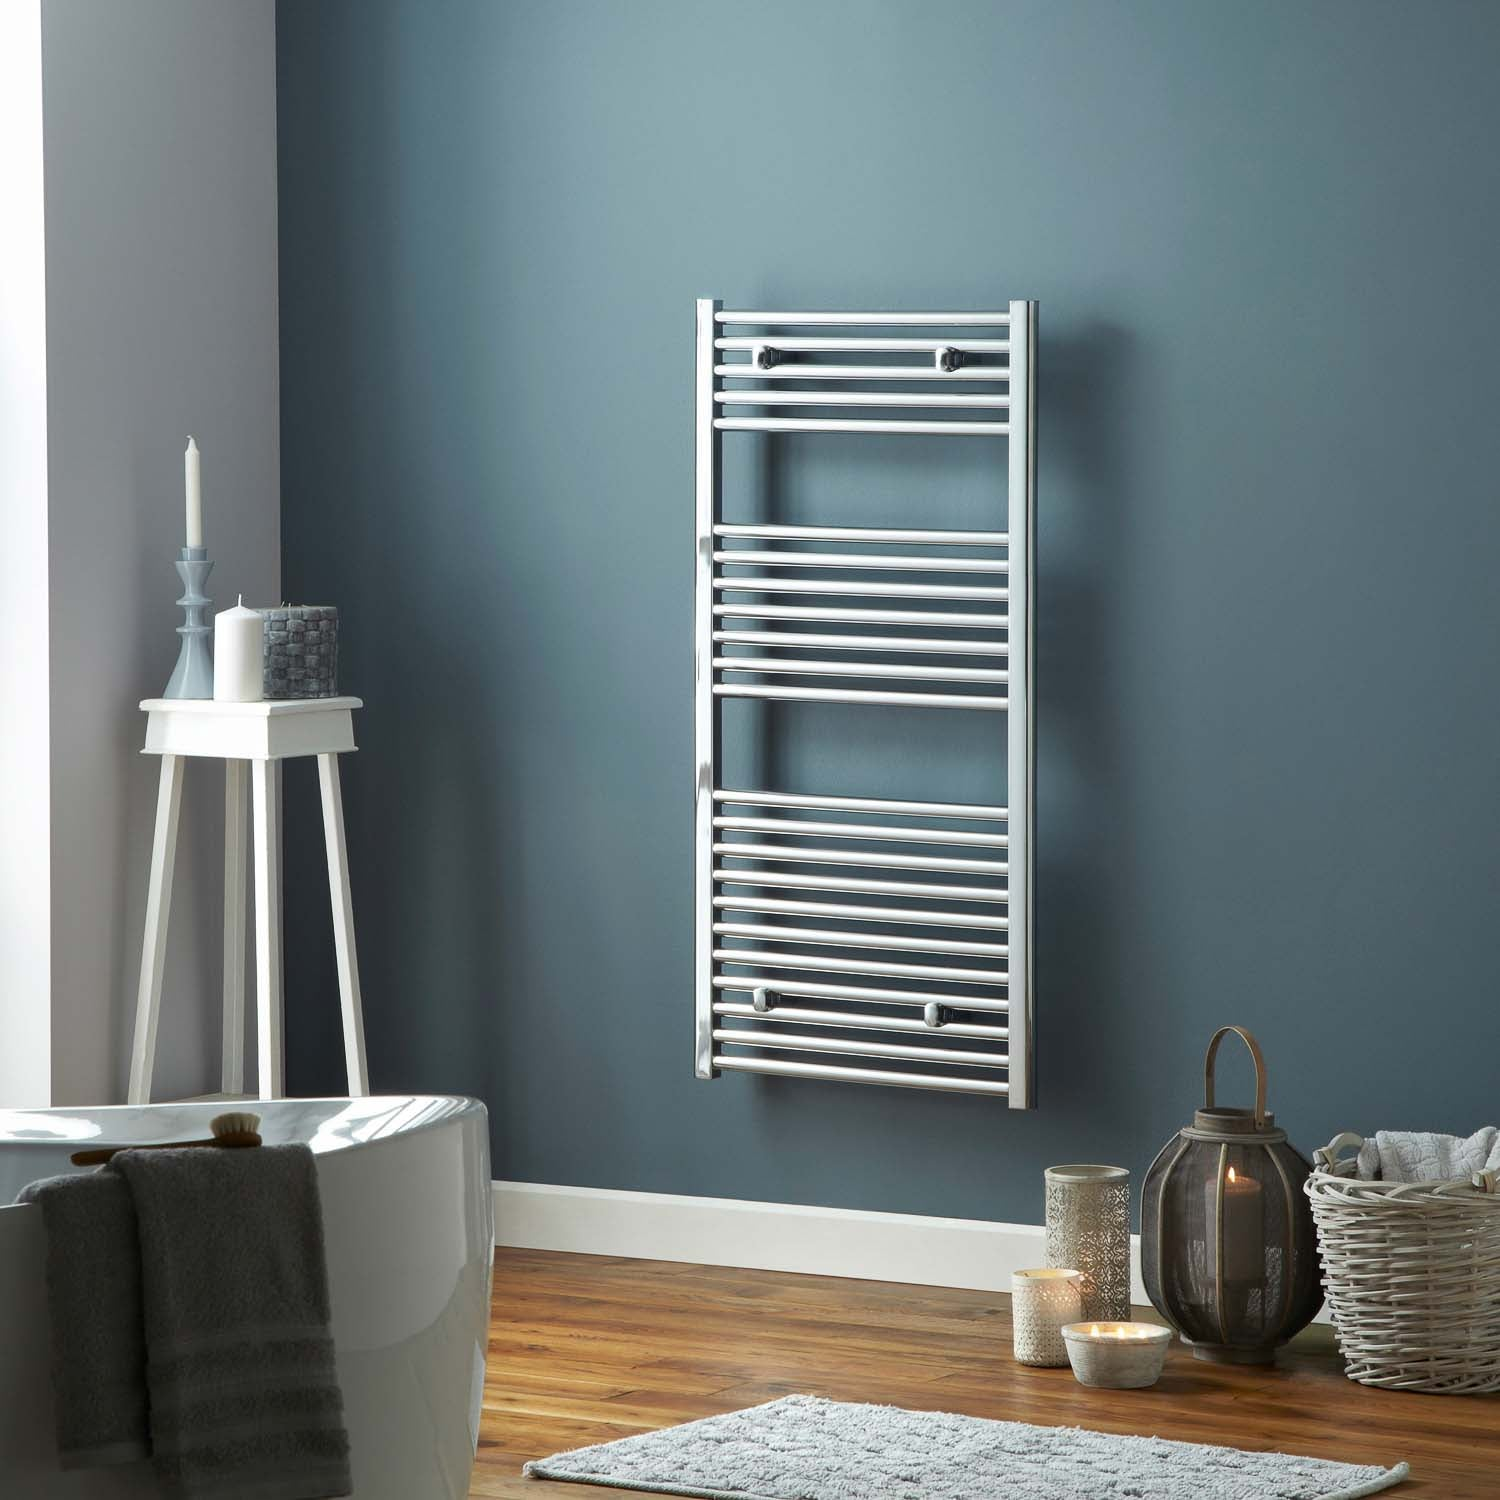 800x500mm Modale Anti-Scald Towel Rail with a chrome finish lifestyle image